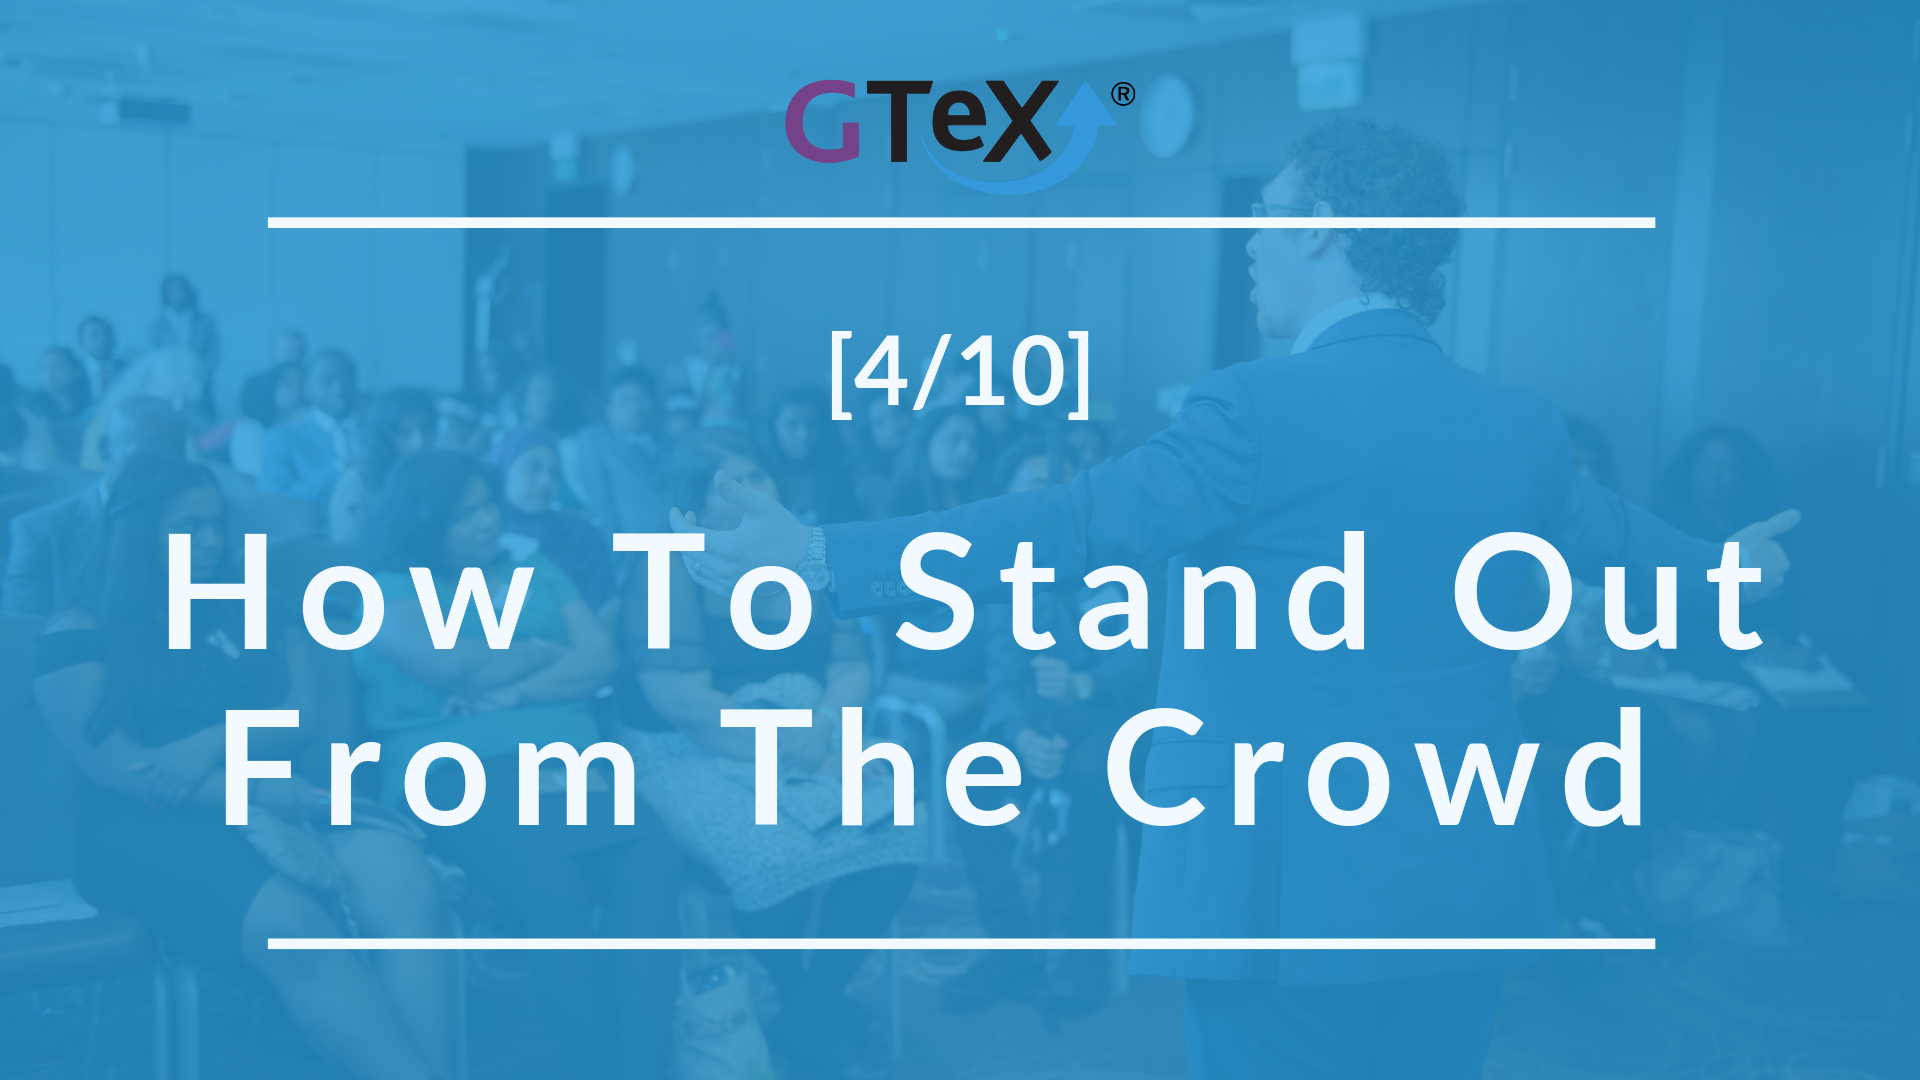 [4/10] How to stand out from the crowd...